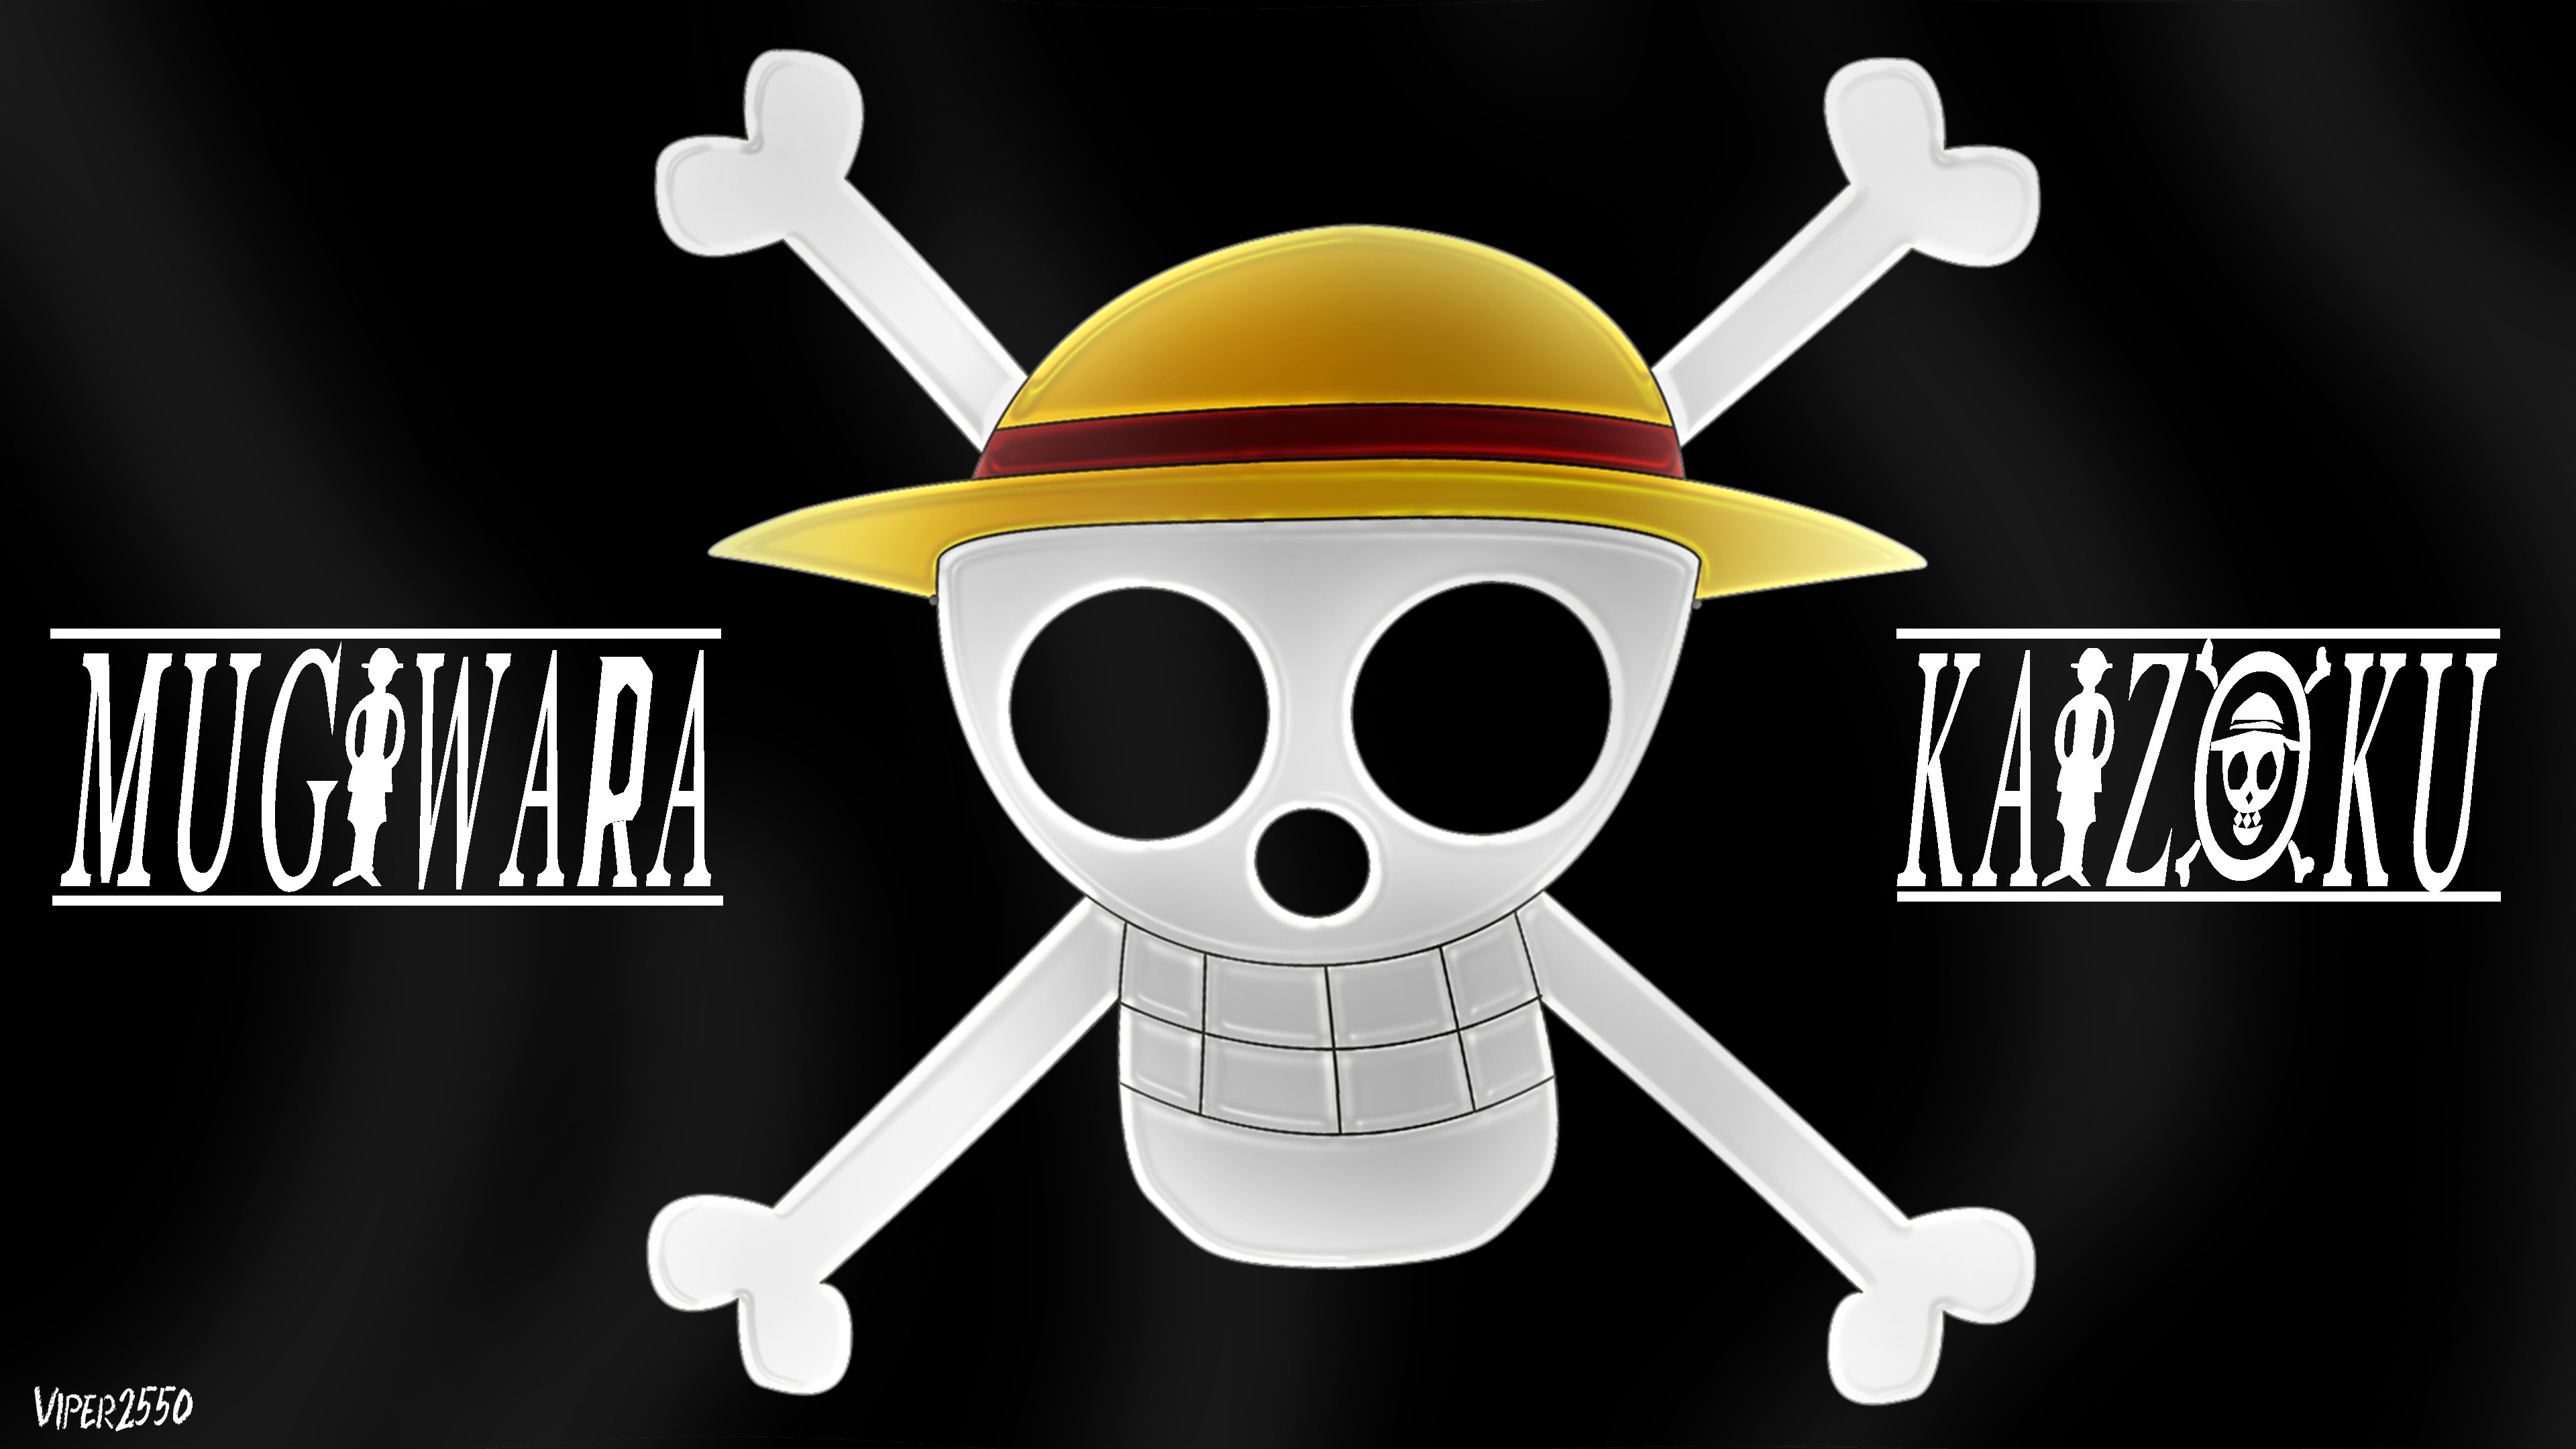 3840x2160 Anime - One Piece Pirate Flag Wallpaper